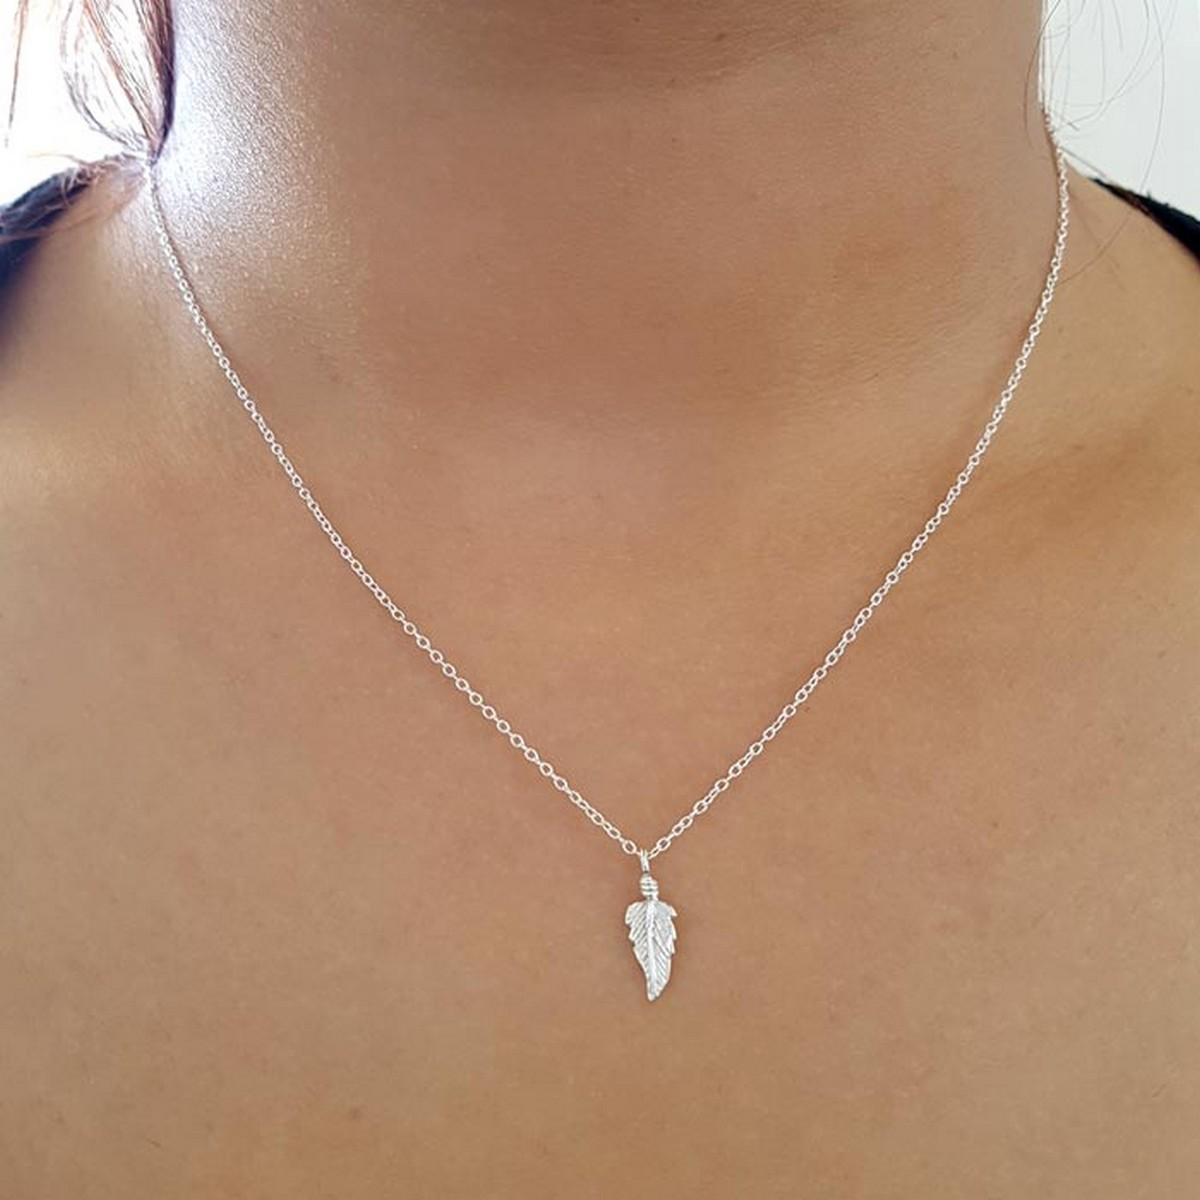 Feather | Ketting 925 zilver